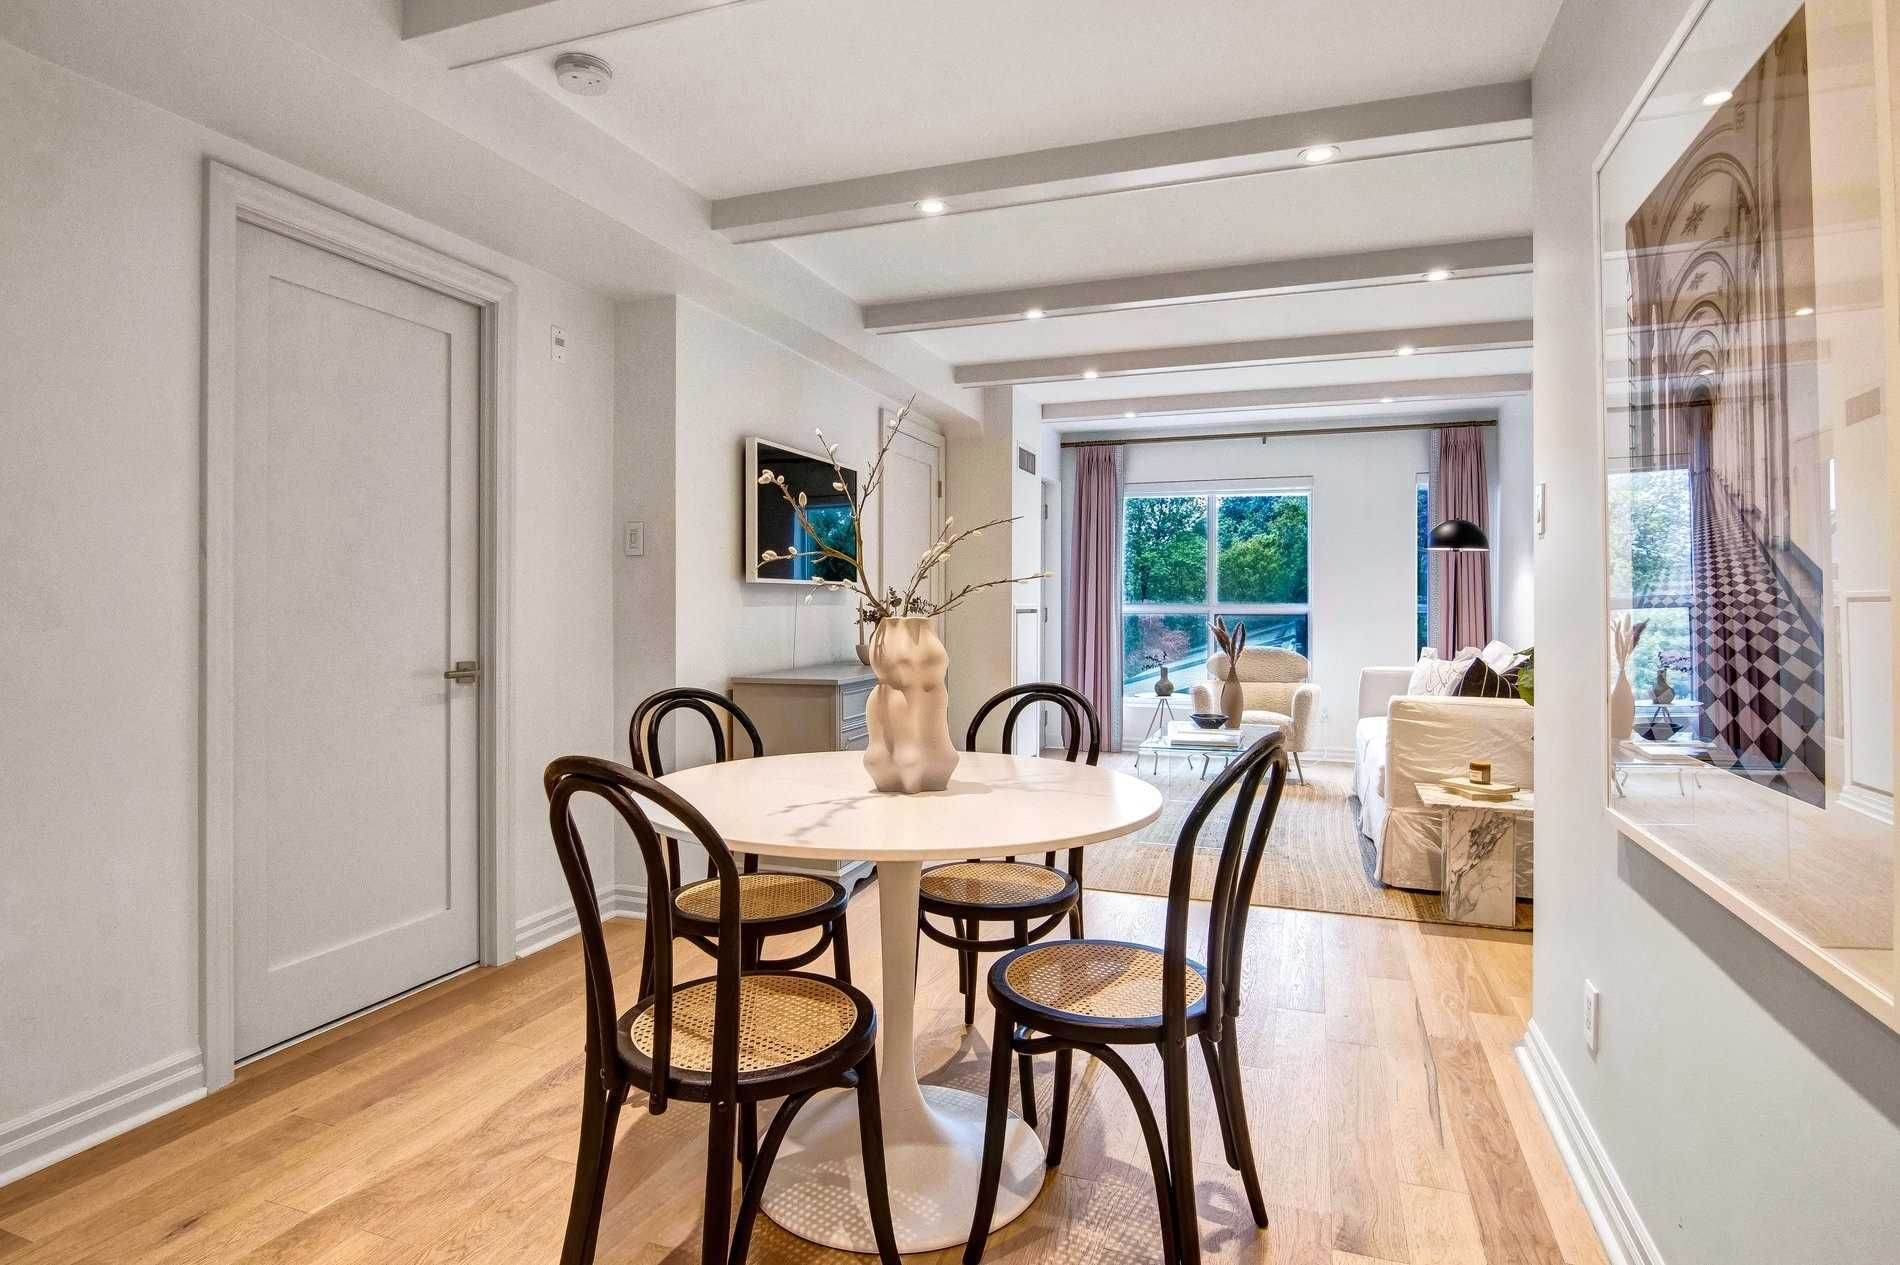 1174 Yonge St, unit 301 for sale in Yonge and St. Clair - image #2